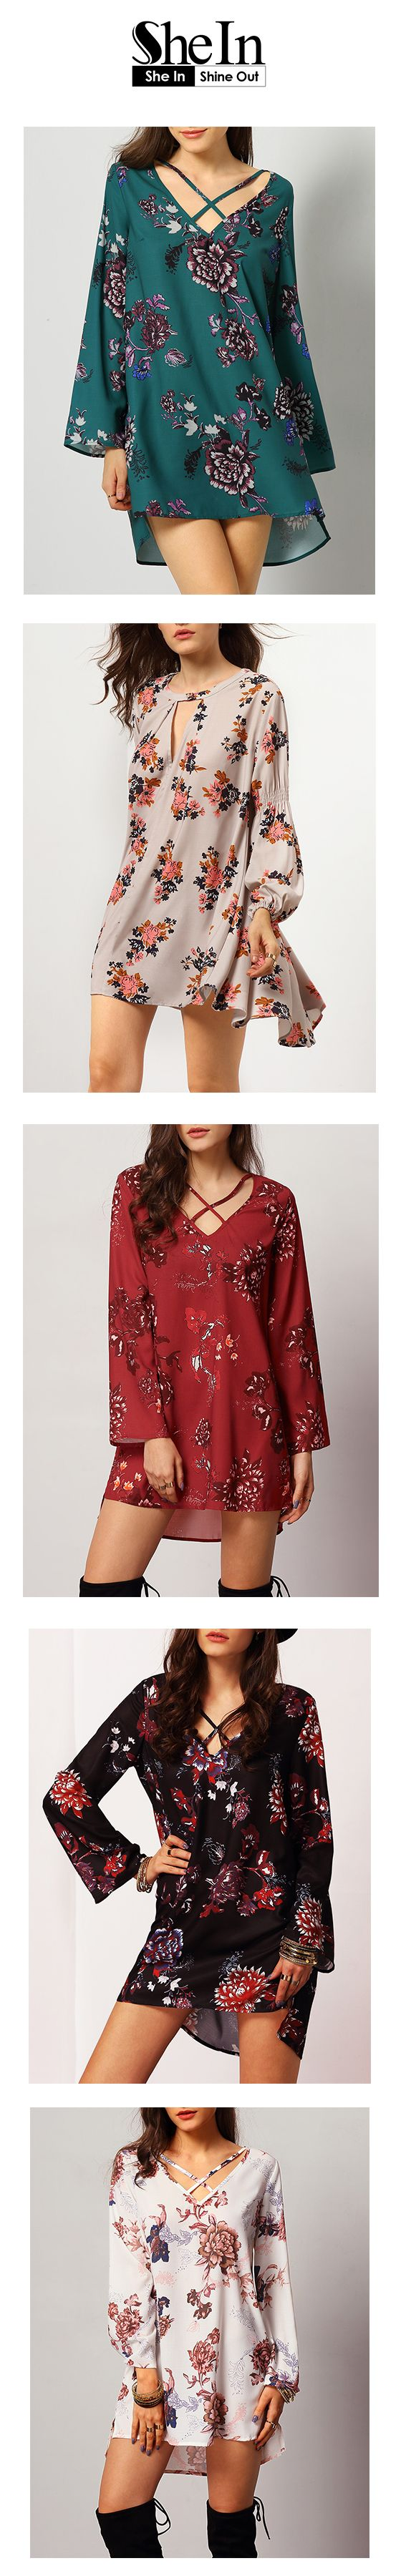 Look at the floral dresses from SheIn,all under $19.99. Most popular dress items For Spring Style,Perfect with Boots and Jeans,find more from SheIn.com